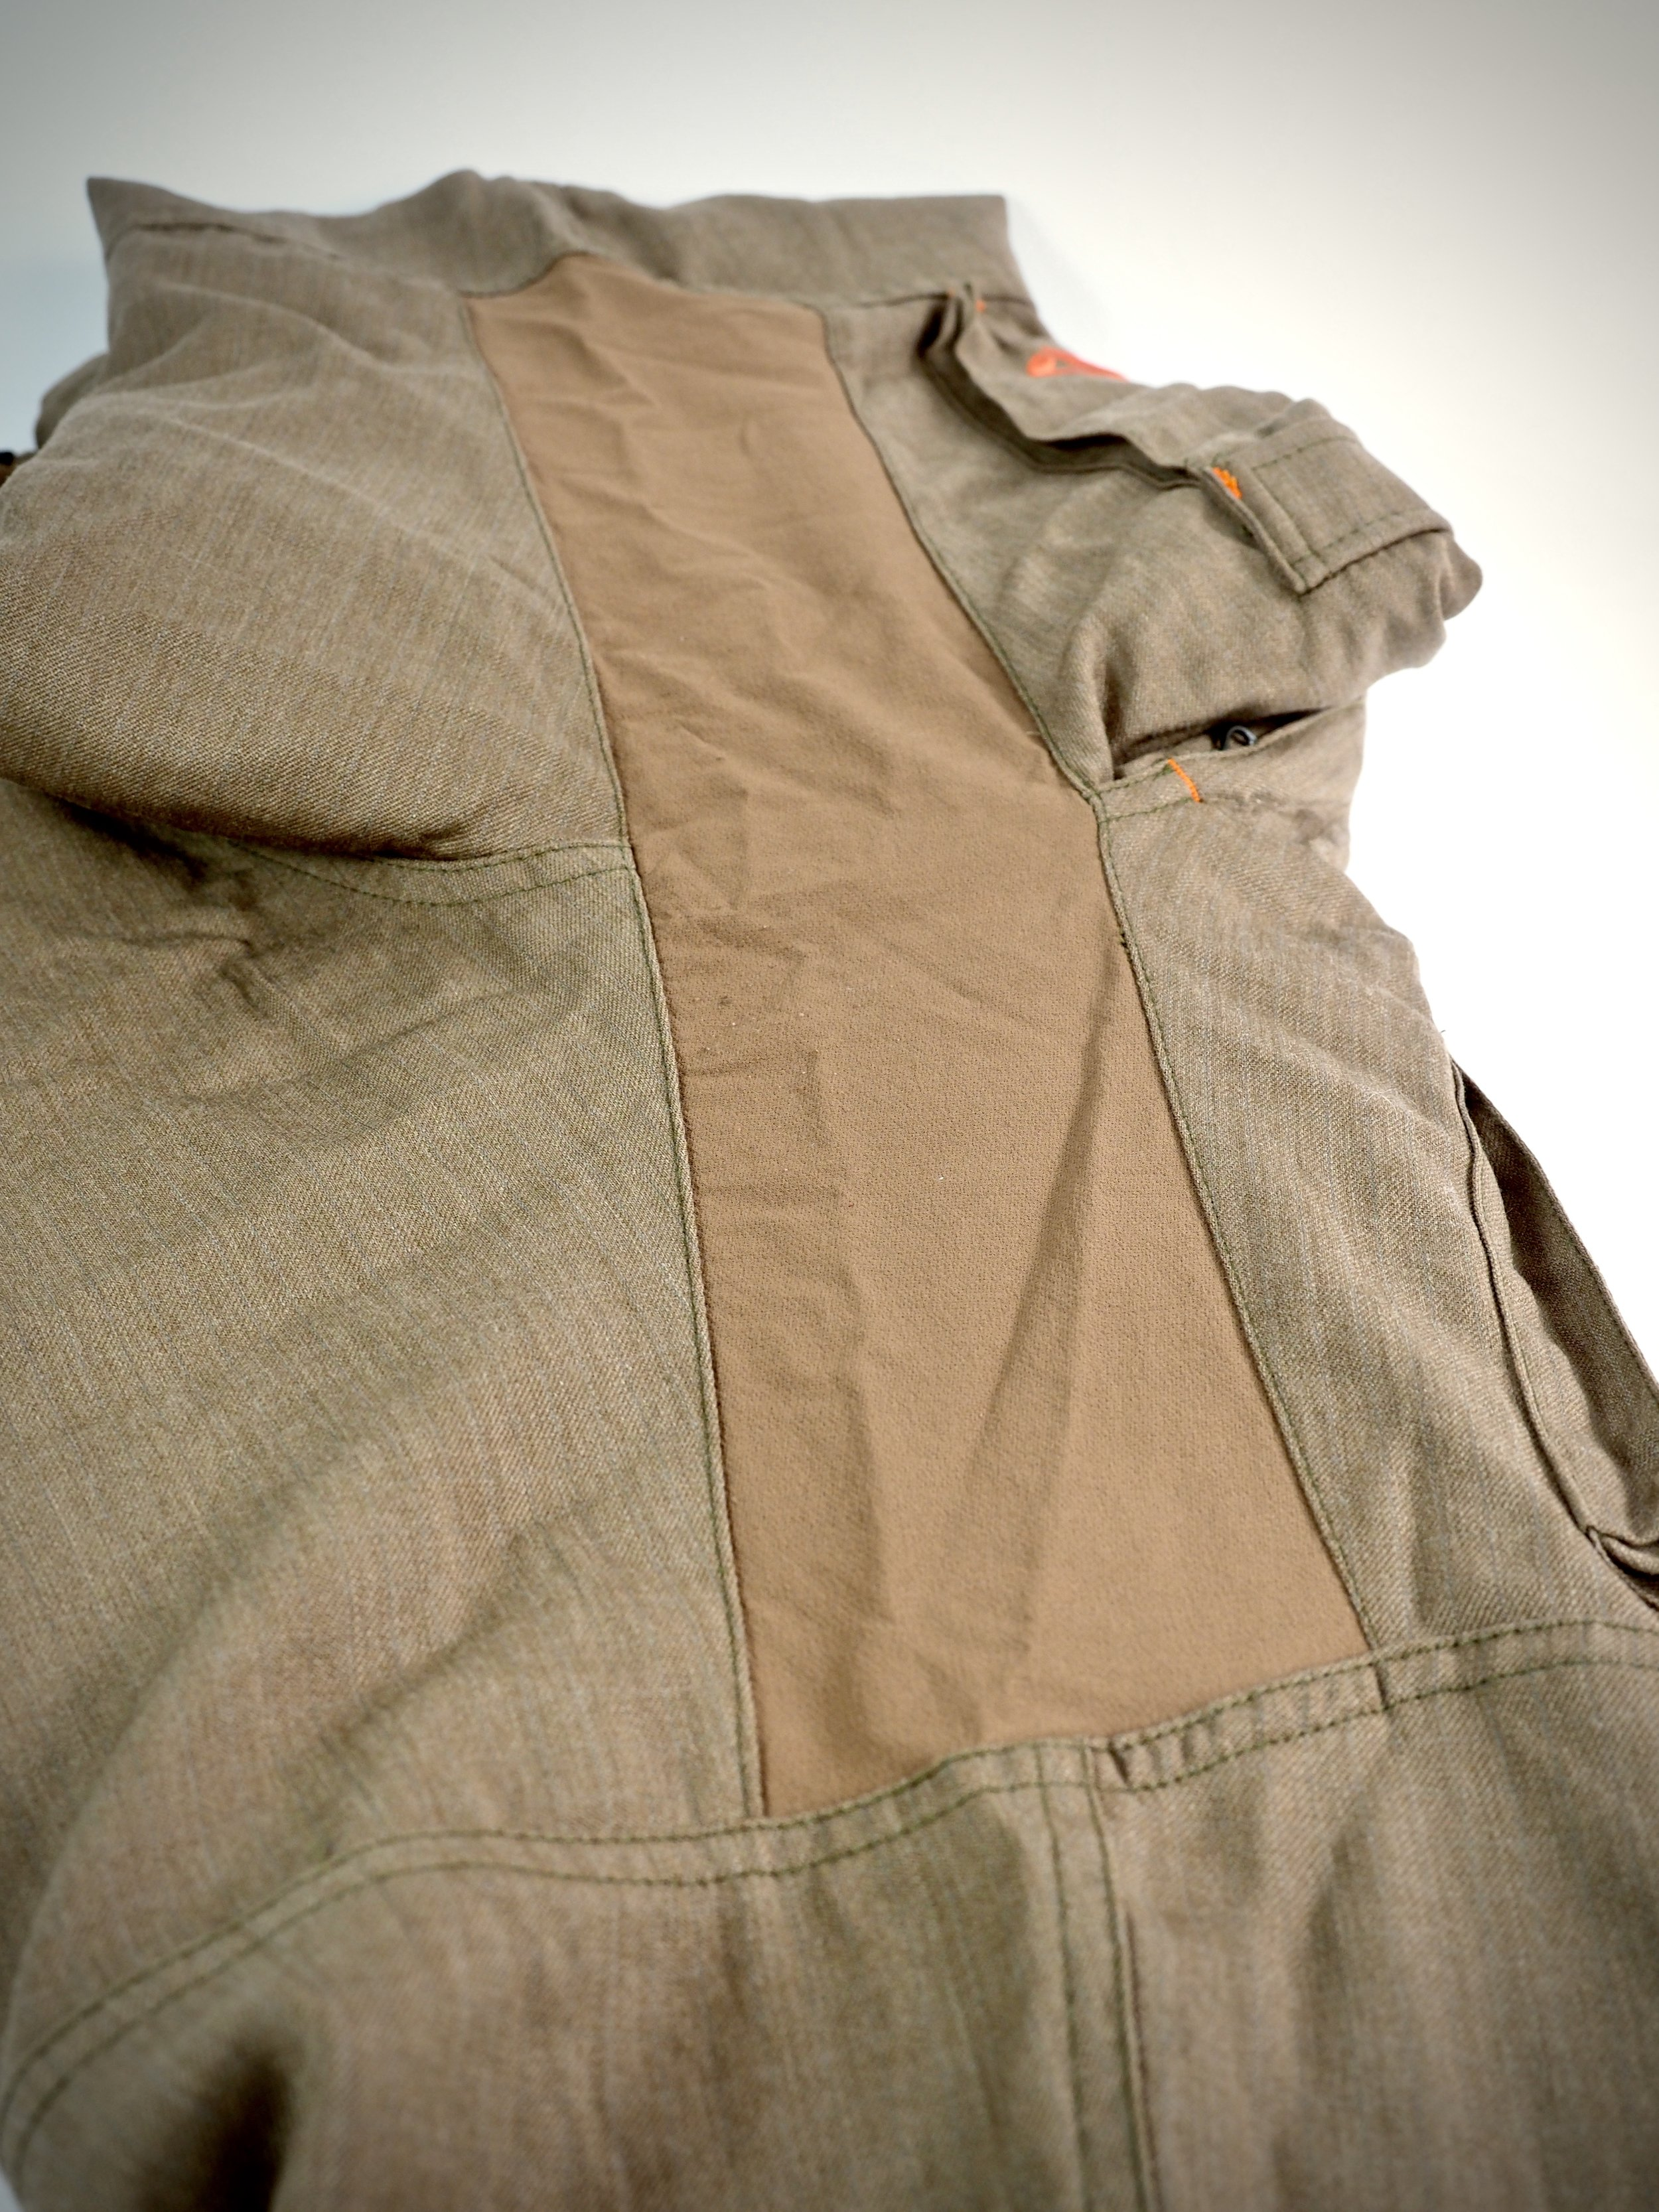 The stretch panel in the crotch of the Kanab.